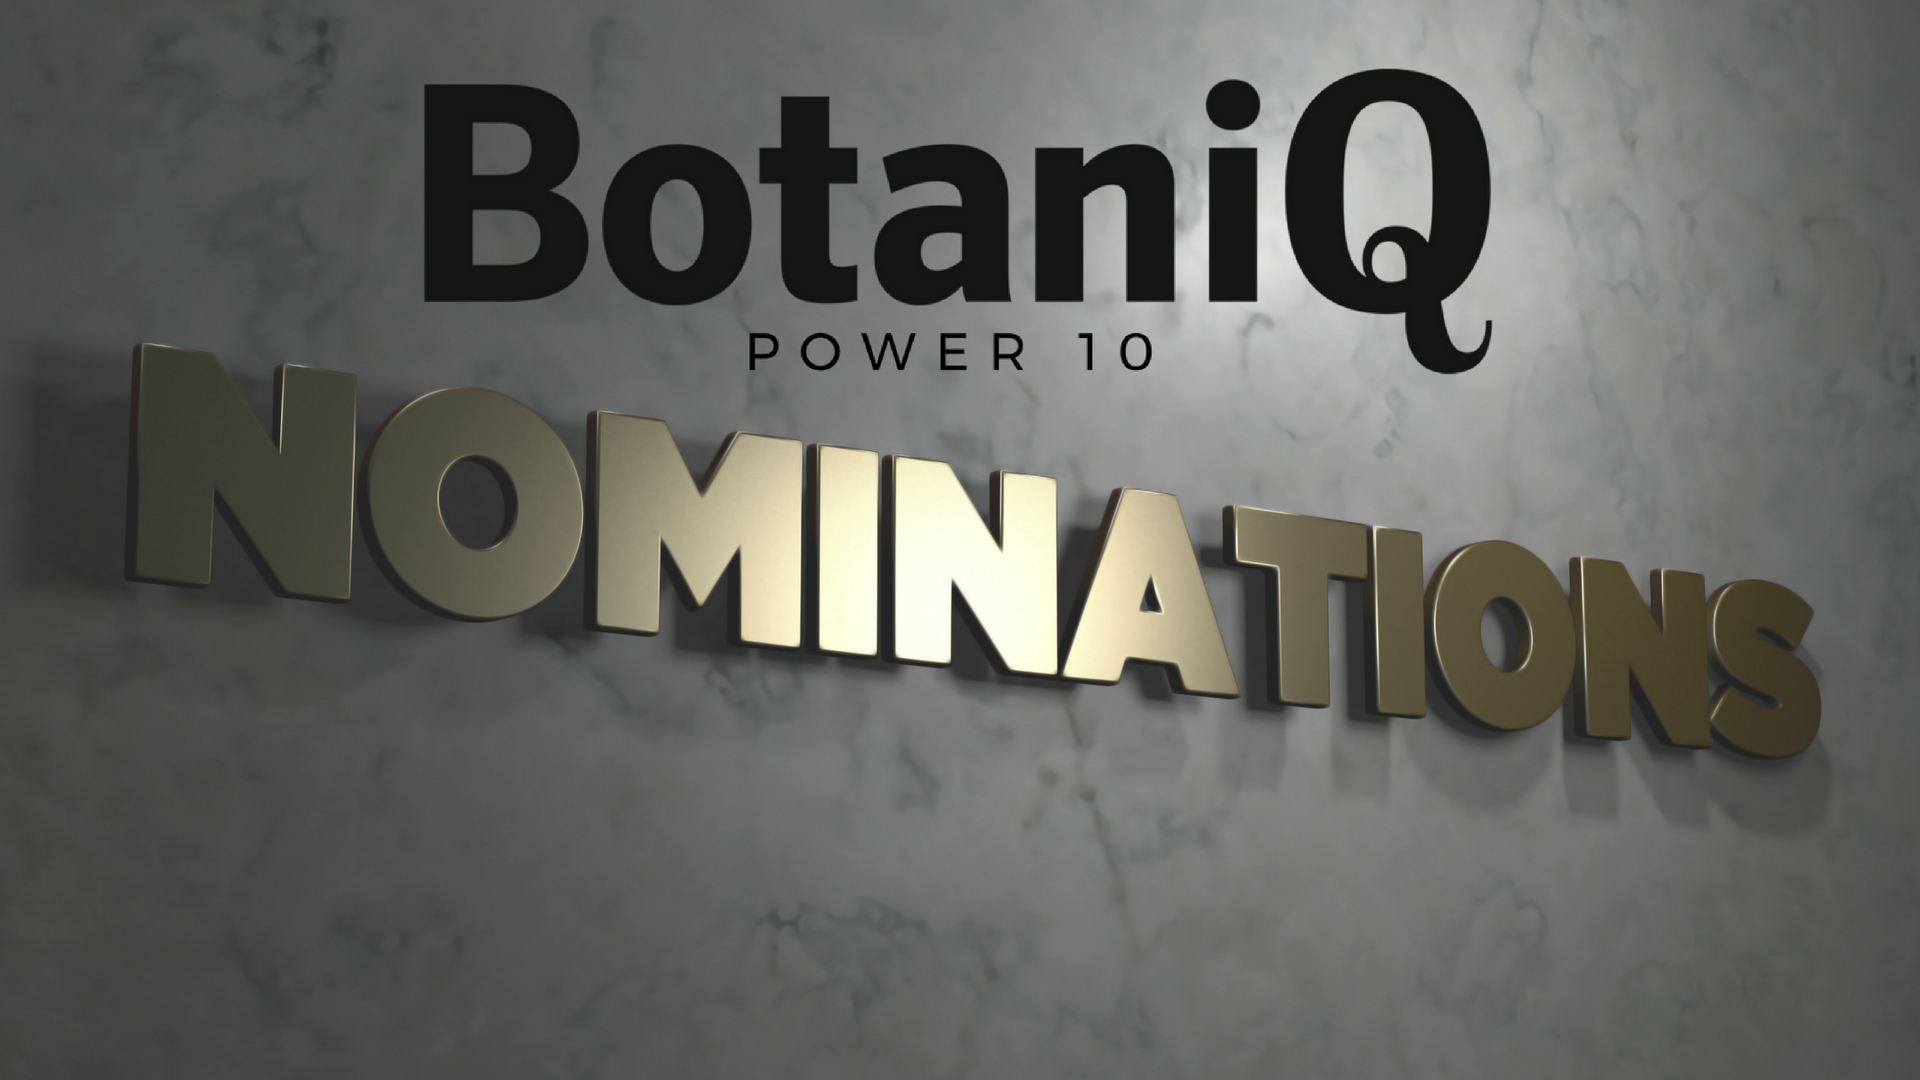 BotaniQ Power 10 Logo with Nominations in gold letters underneath